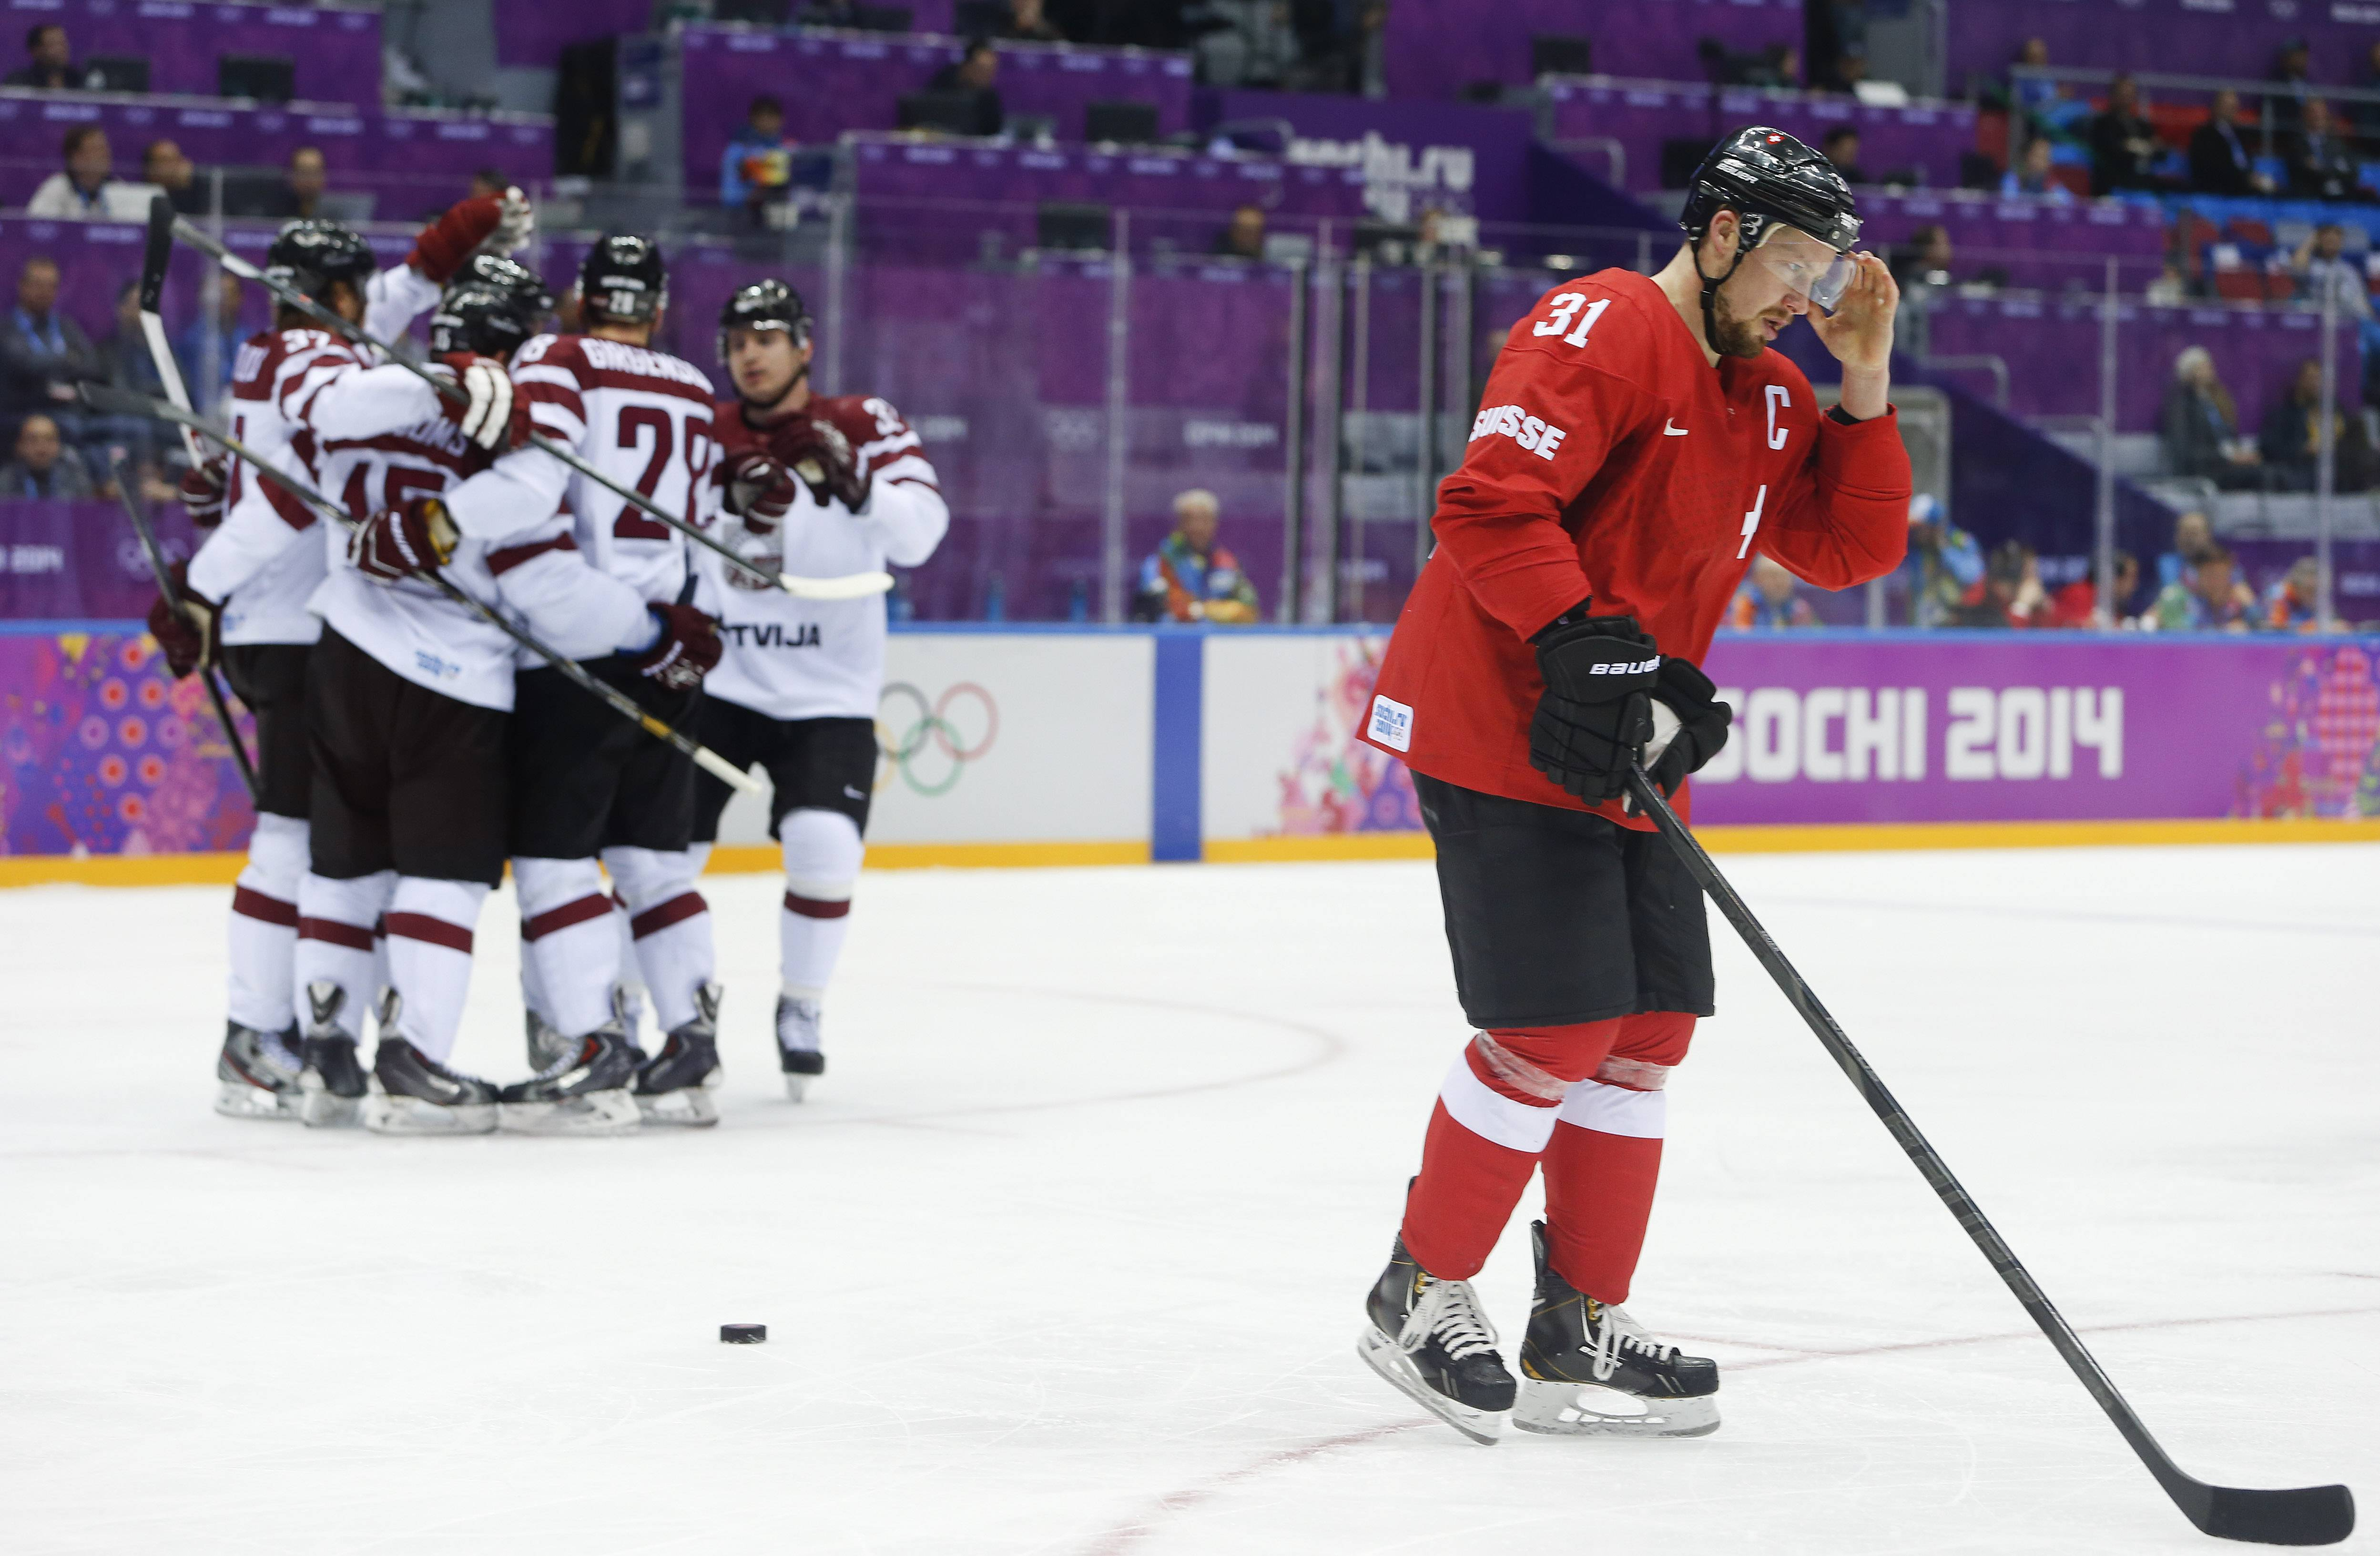 Switzerland defenseman Mathias Seger skates back to the bench after Latvia scored a goal in the first period .